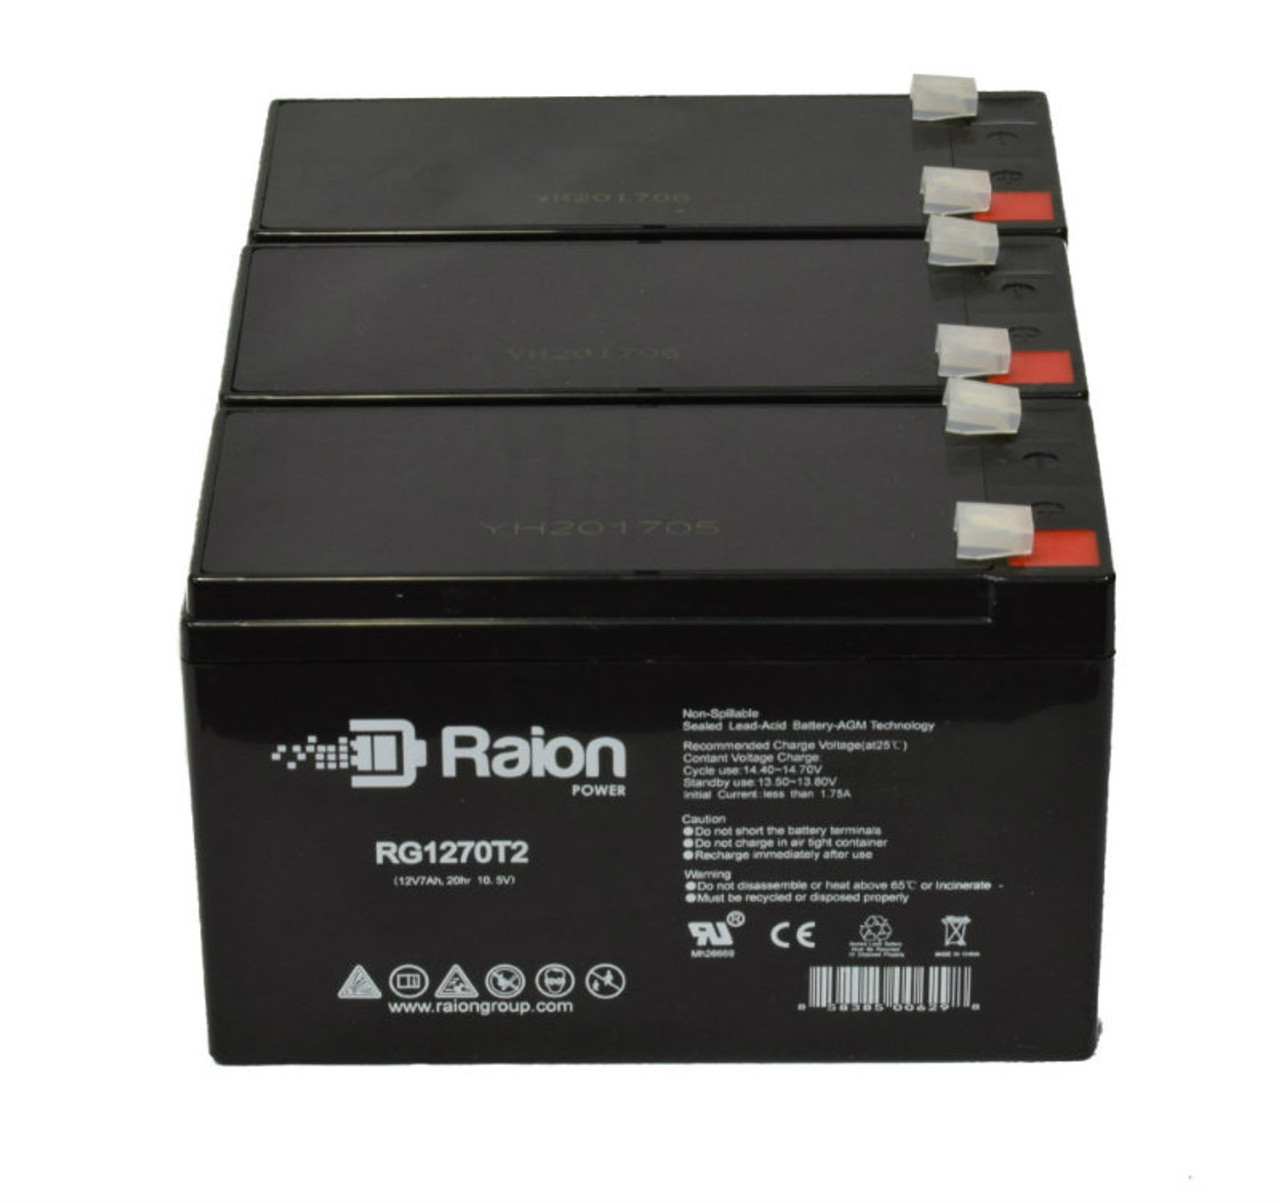 Raion Power RG1270T1 Replacement Battery Pack For Power Source WP7.5-12 (91-190) - (3 Pack)